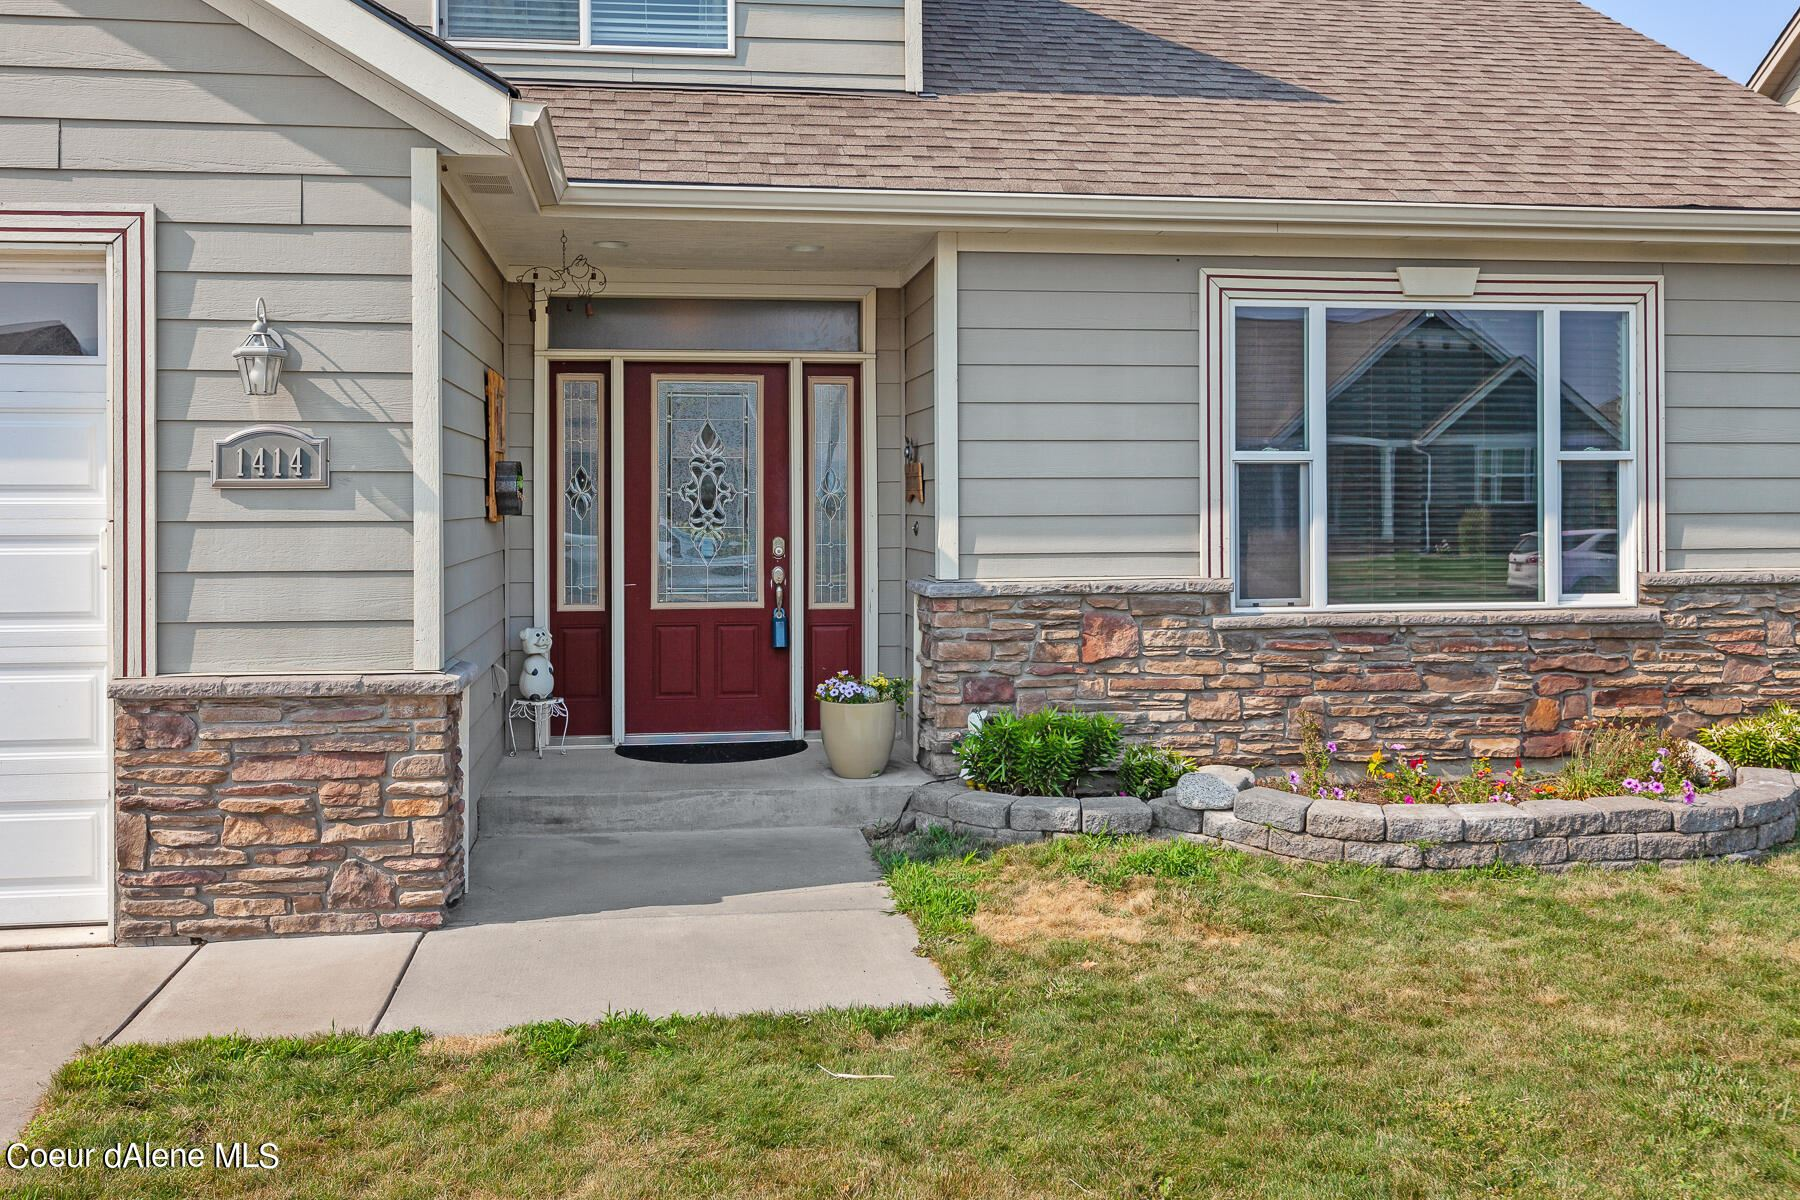 Photo of 1414 E WARM SPRINGS AVE, Post Falls, ID 83854 (MLS # 21-6835)